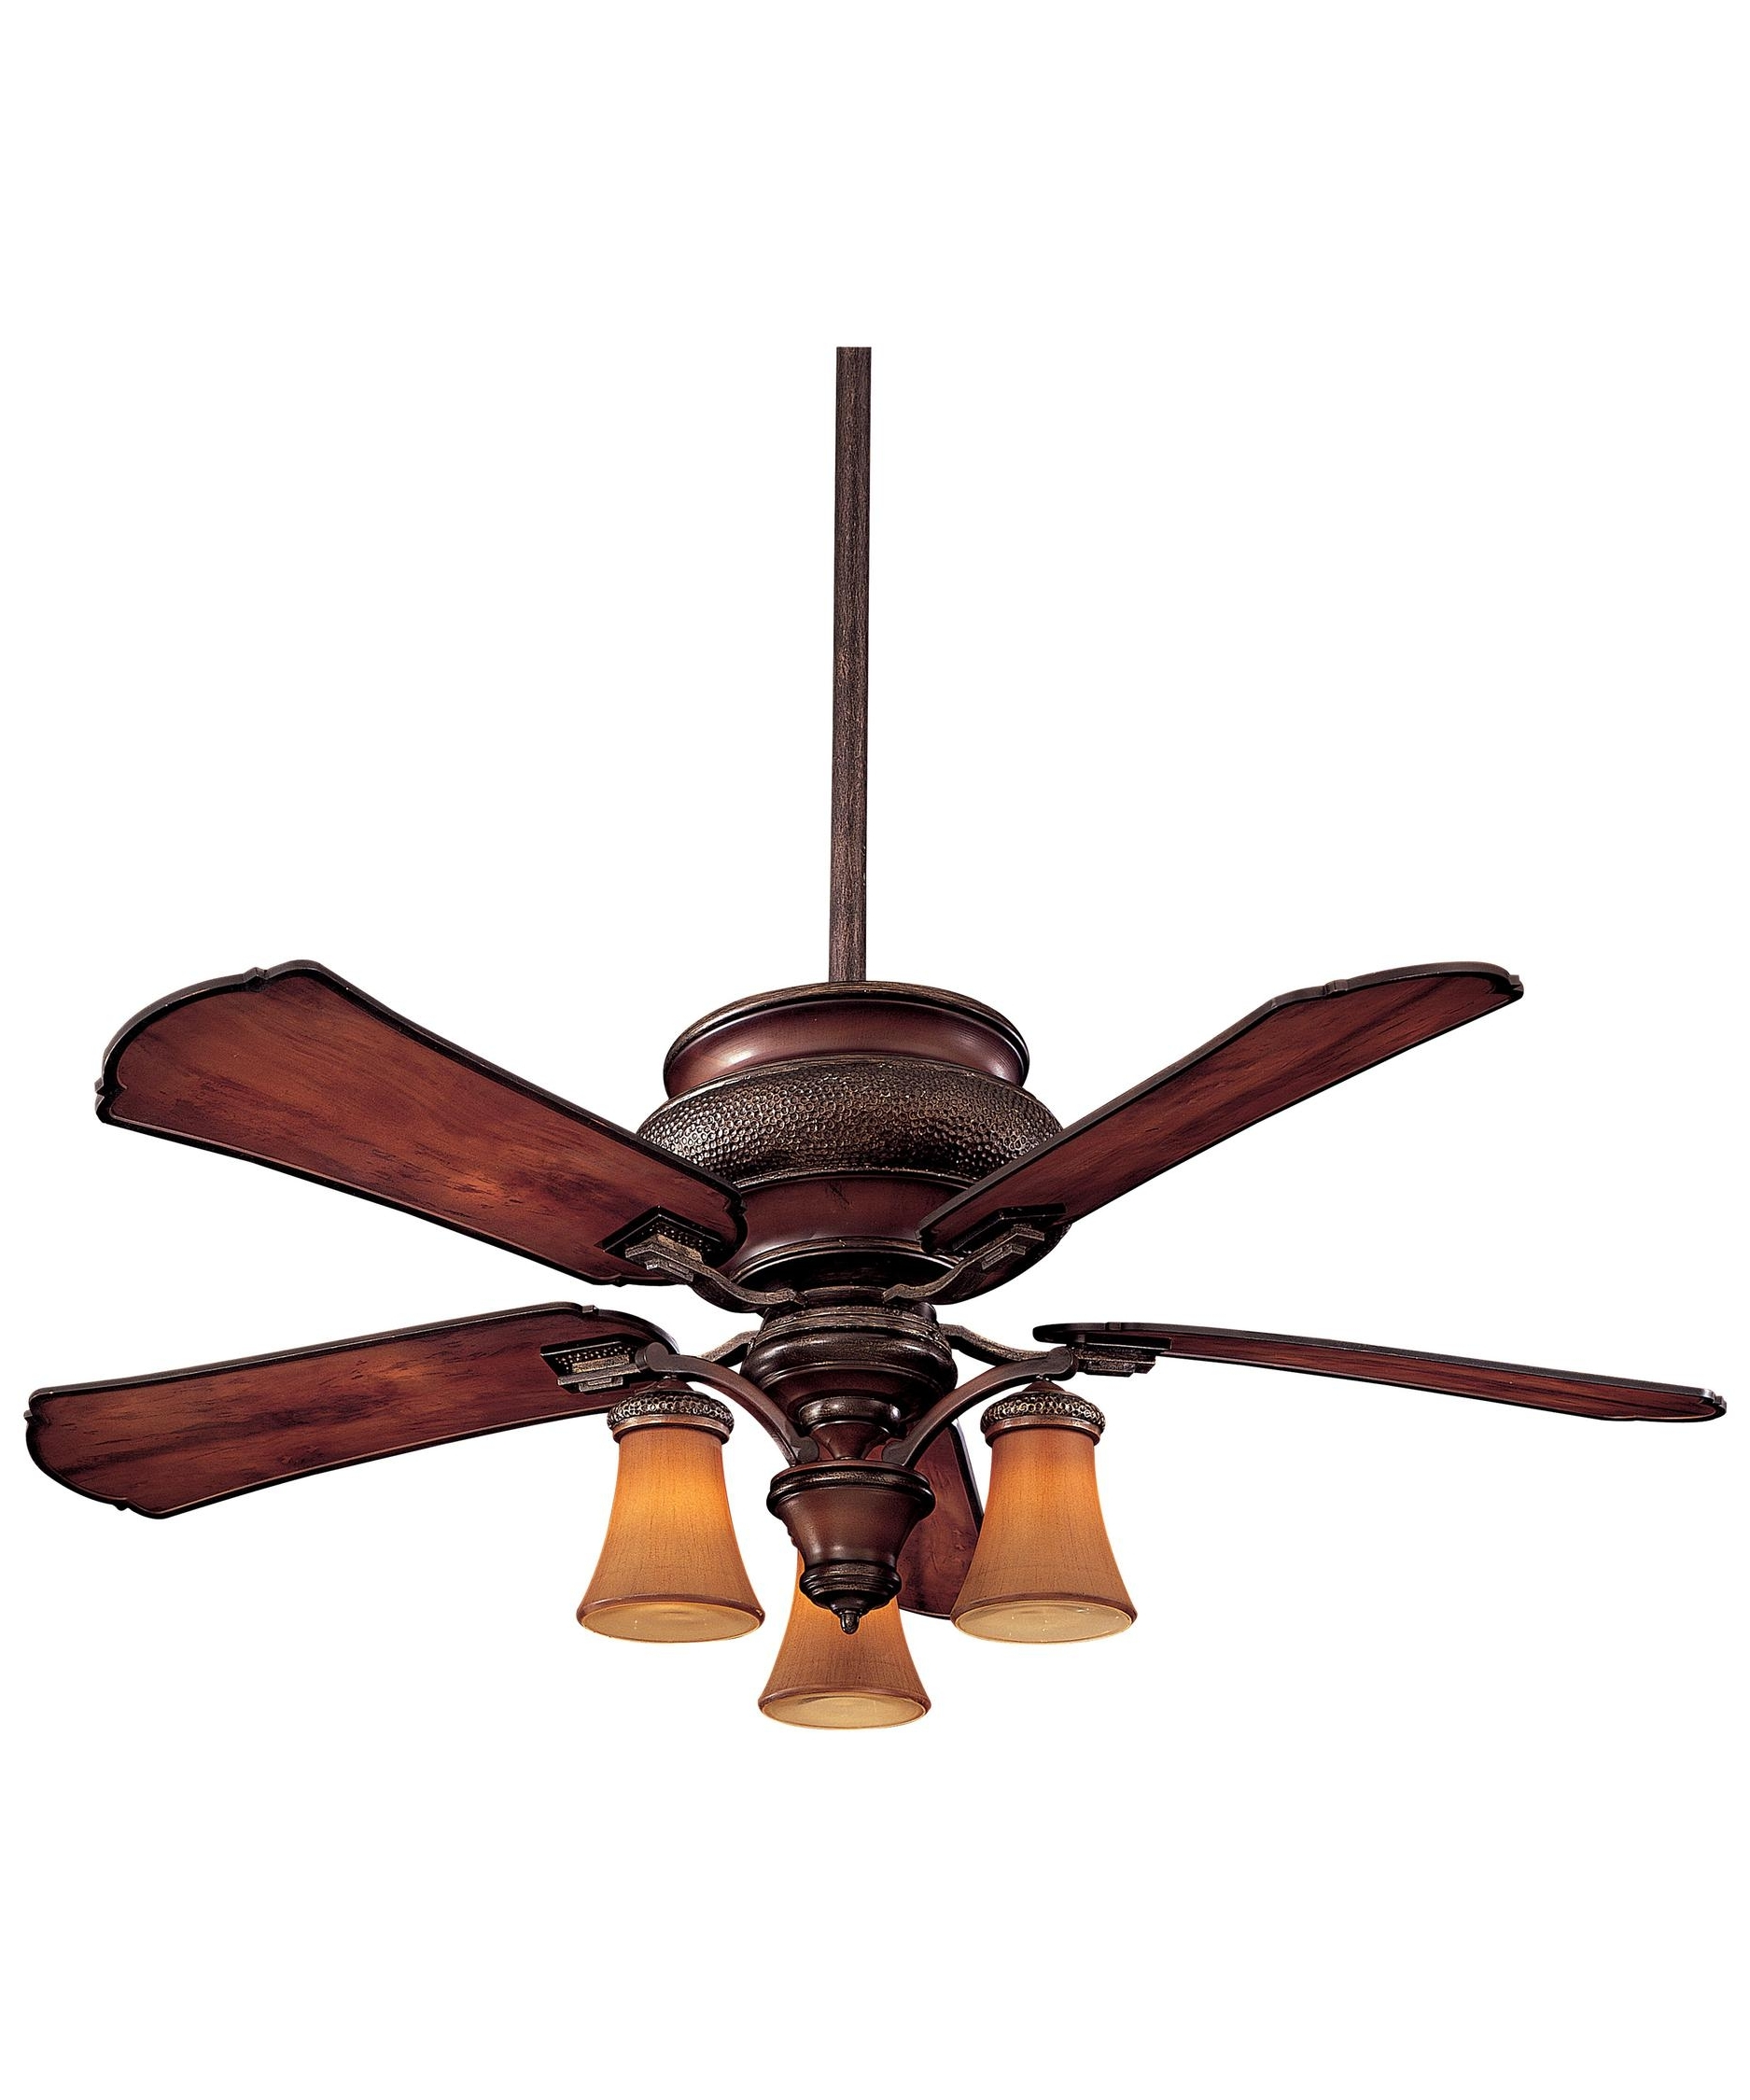 Preferred Craftsman Ceiling Fan Light Kit Outstanding Lowes Ceiling Fans With With Regard To Mission Style Outdoor Ceiling Fans With Lights (View 8 of 20)